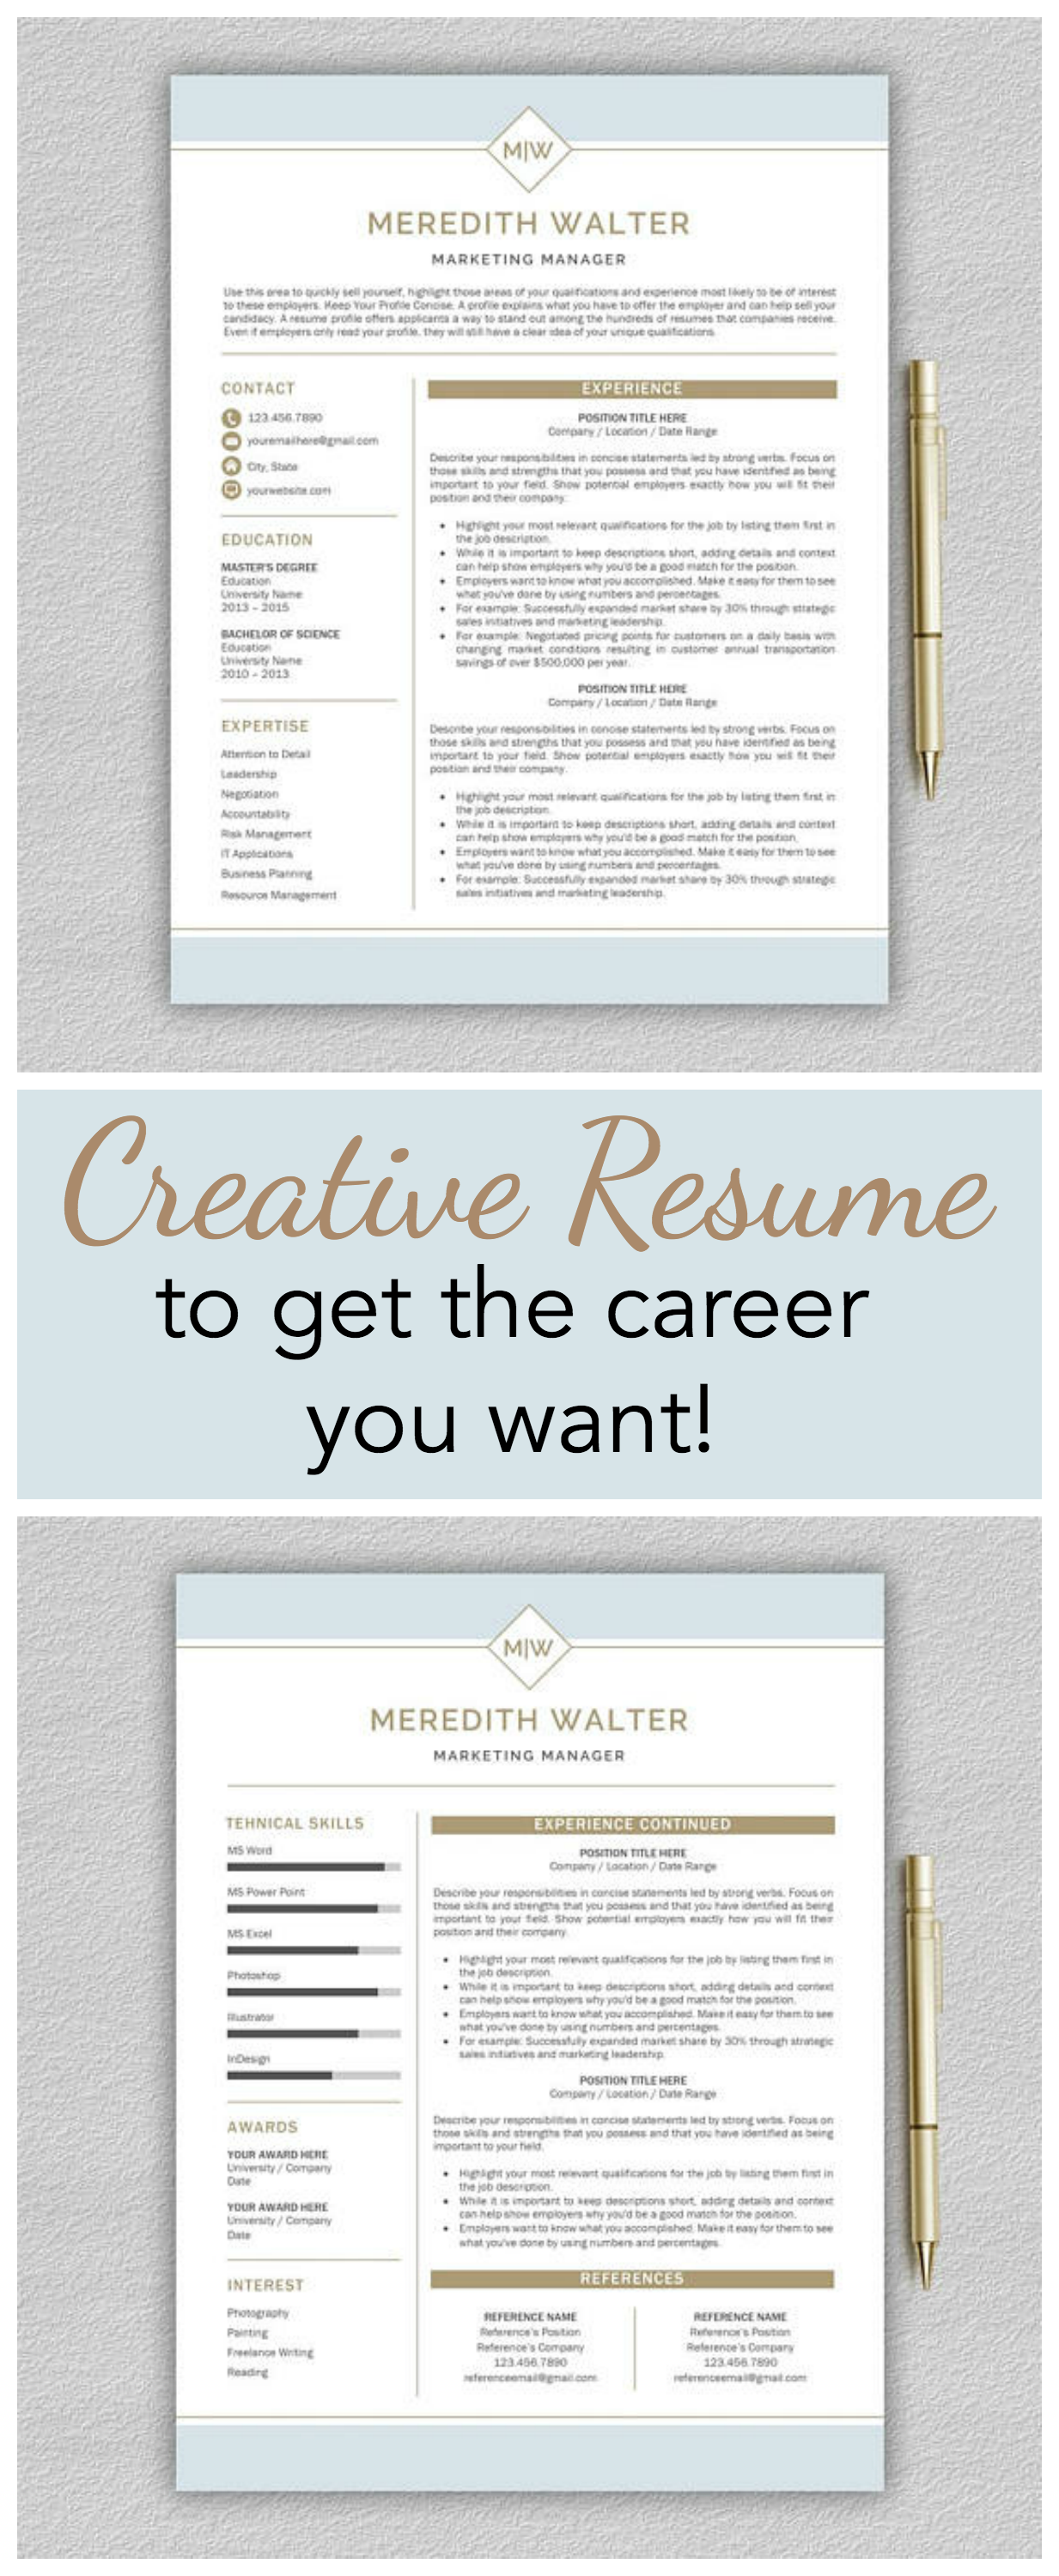 Love Love Love How Professional Yet Creative This Resume Looks